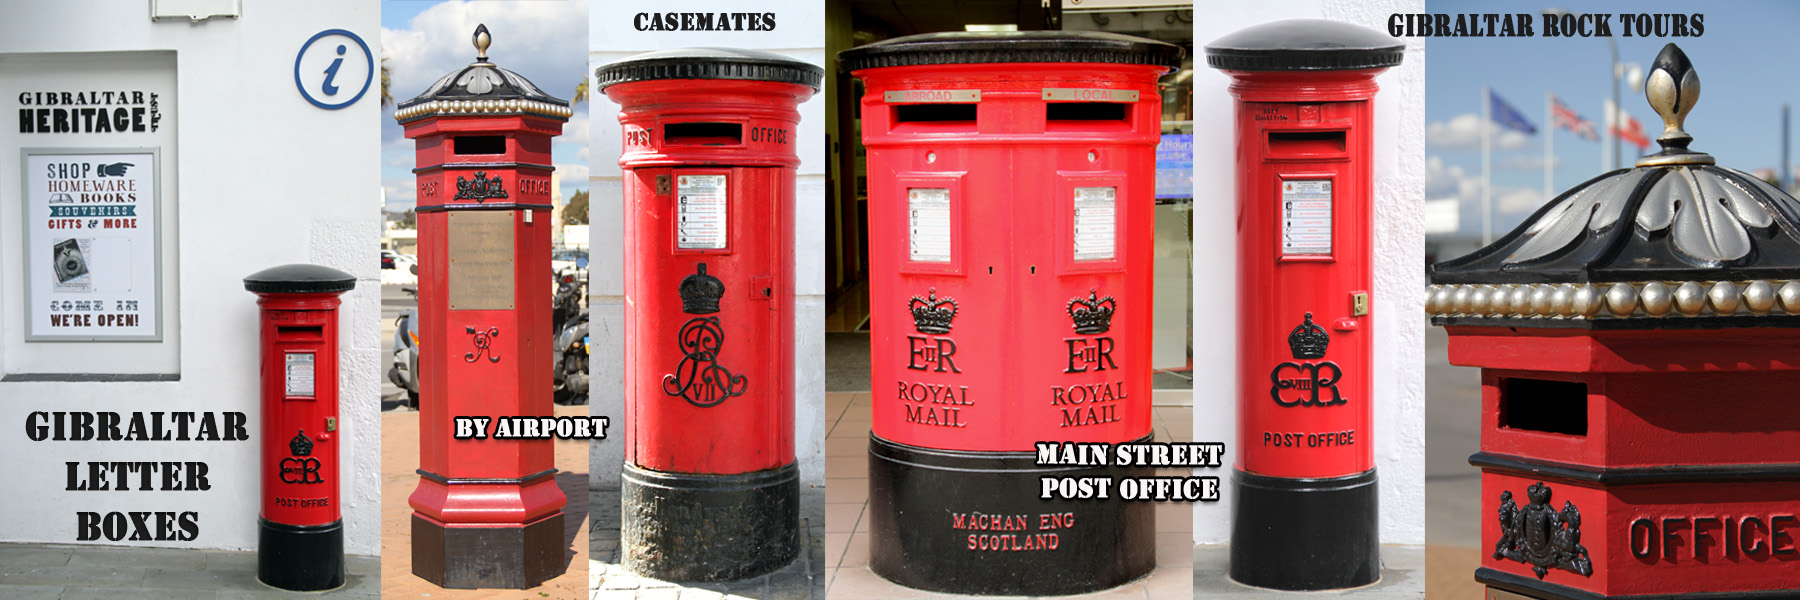 Royal Mail Letter Box.Gibraltar Rock Tours Gibraltar Rock Tours Post Office